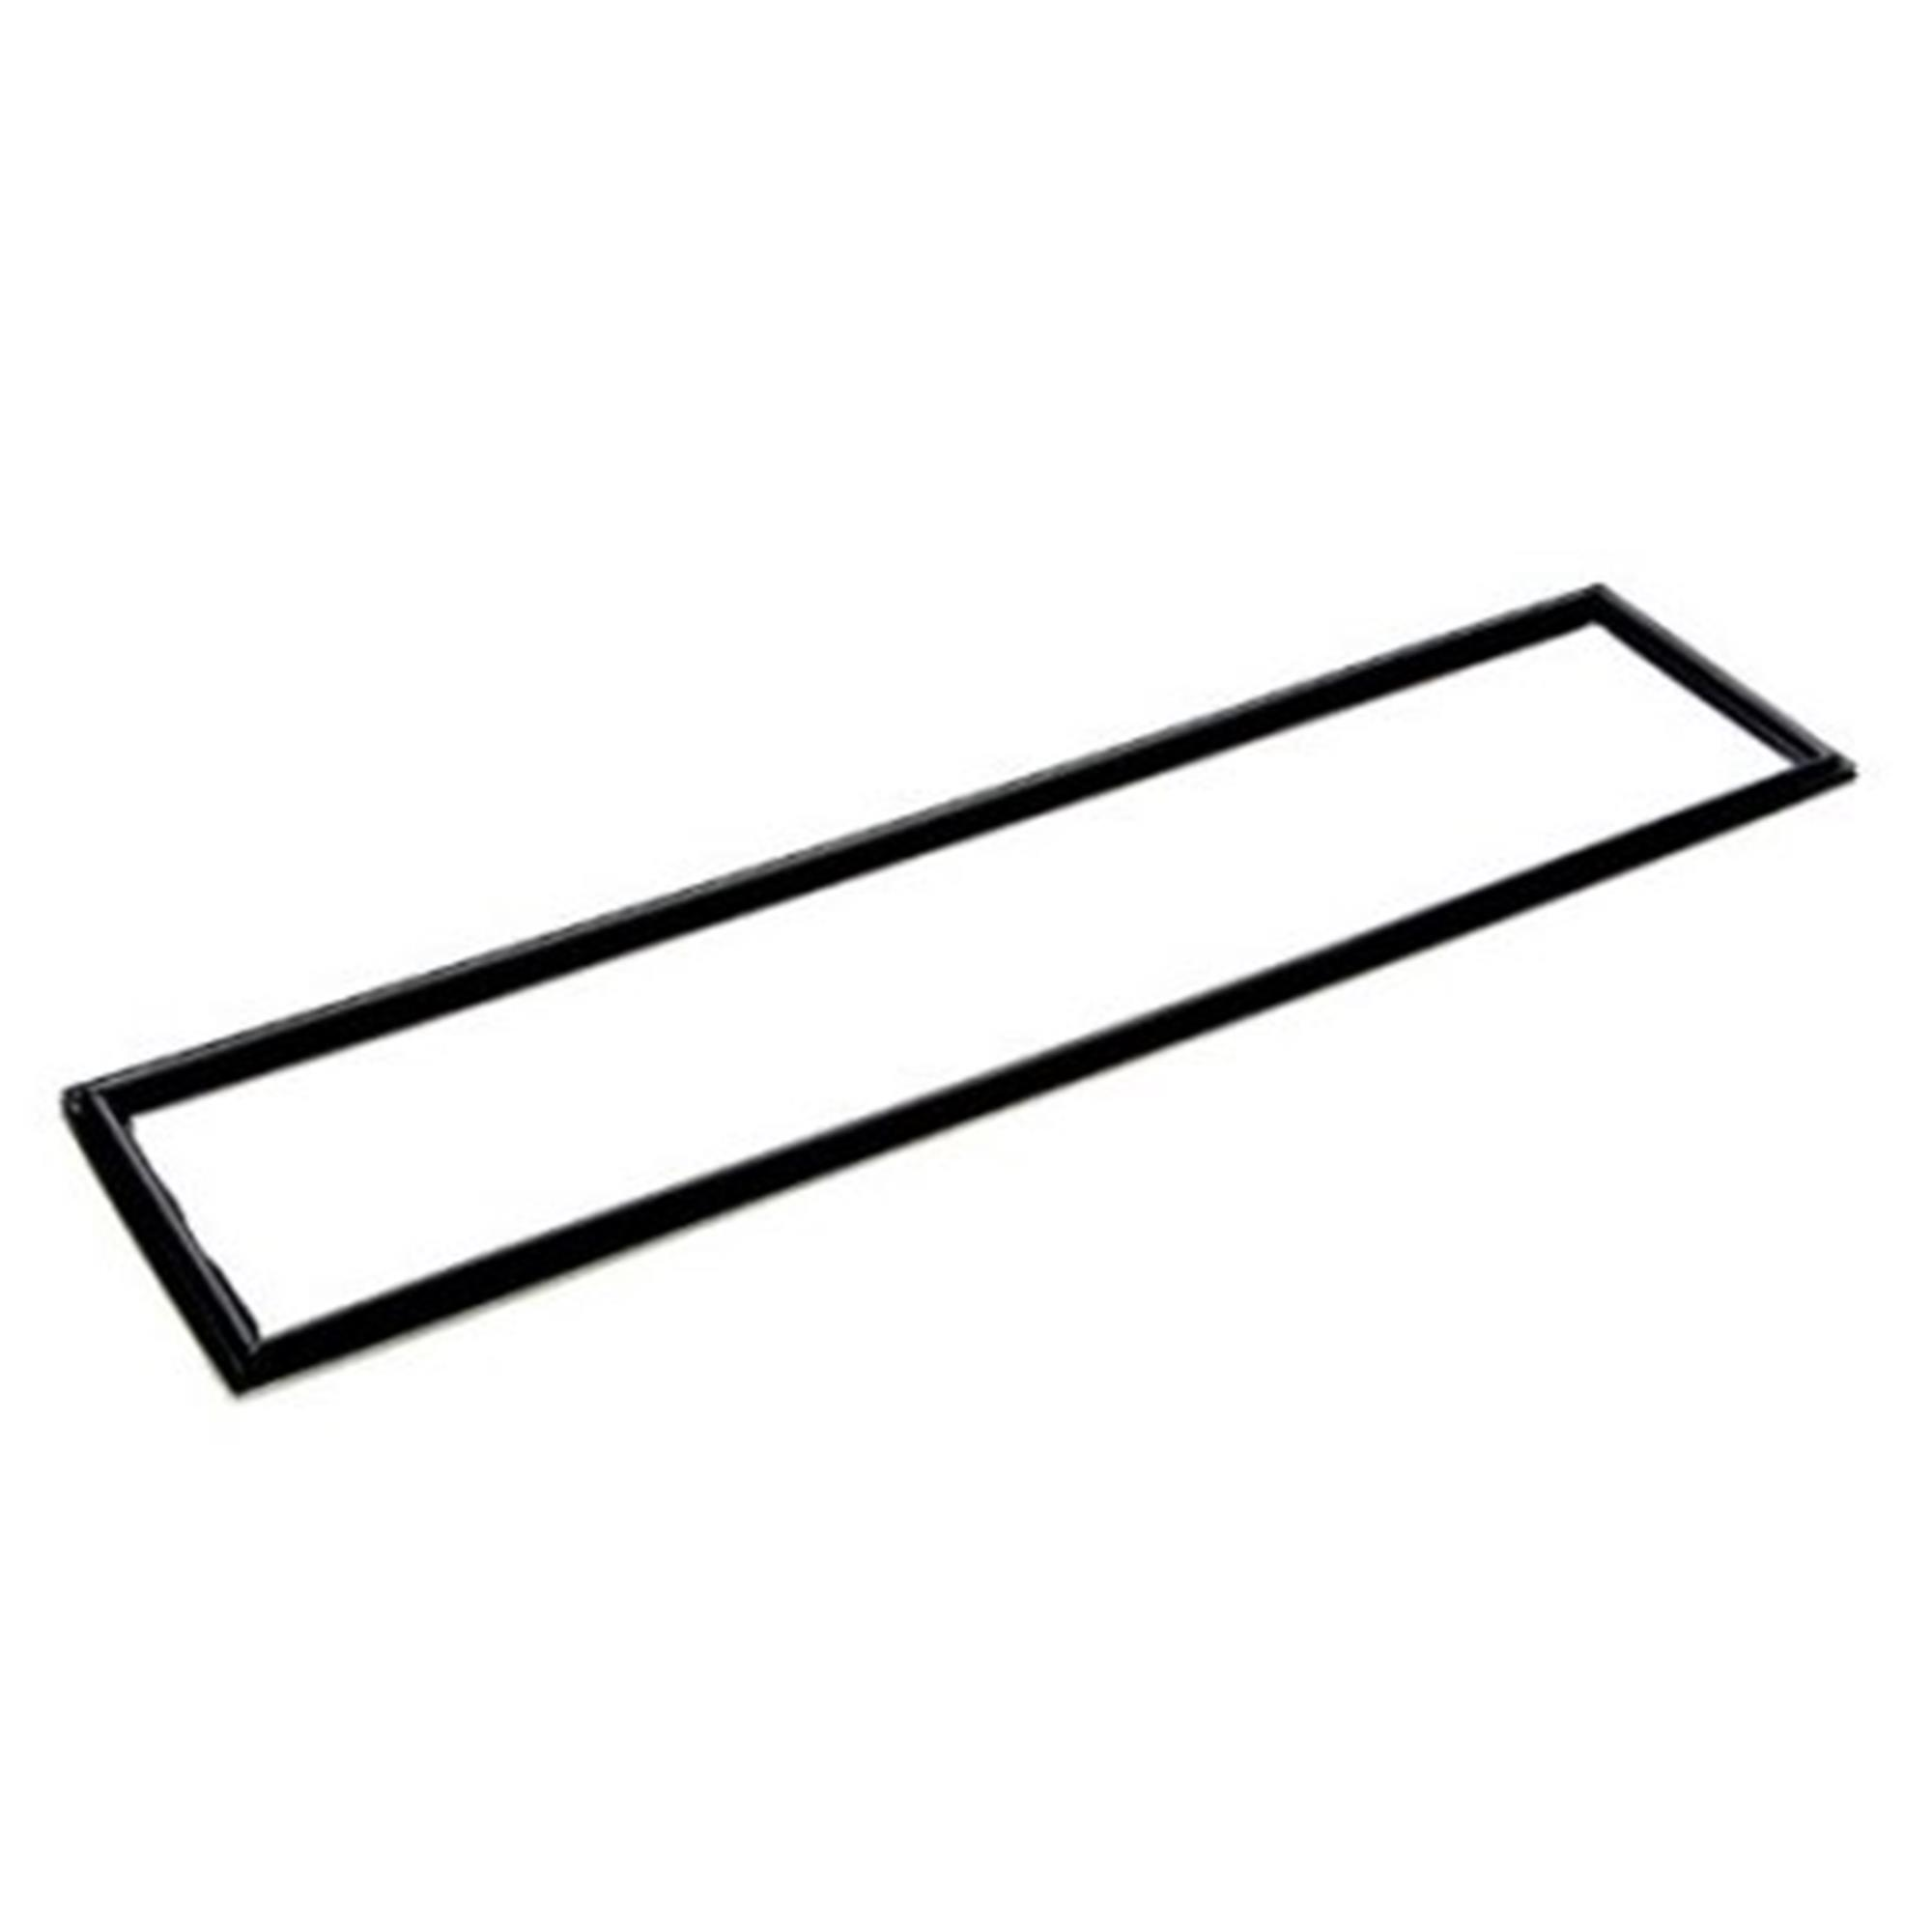 241786005 For Frigidaire Refrigerator Door Gasket